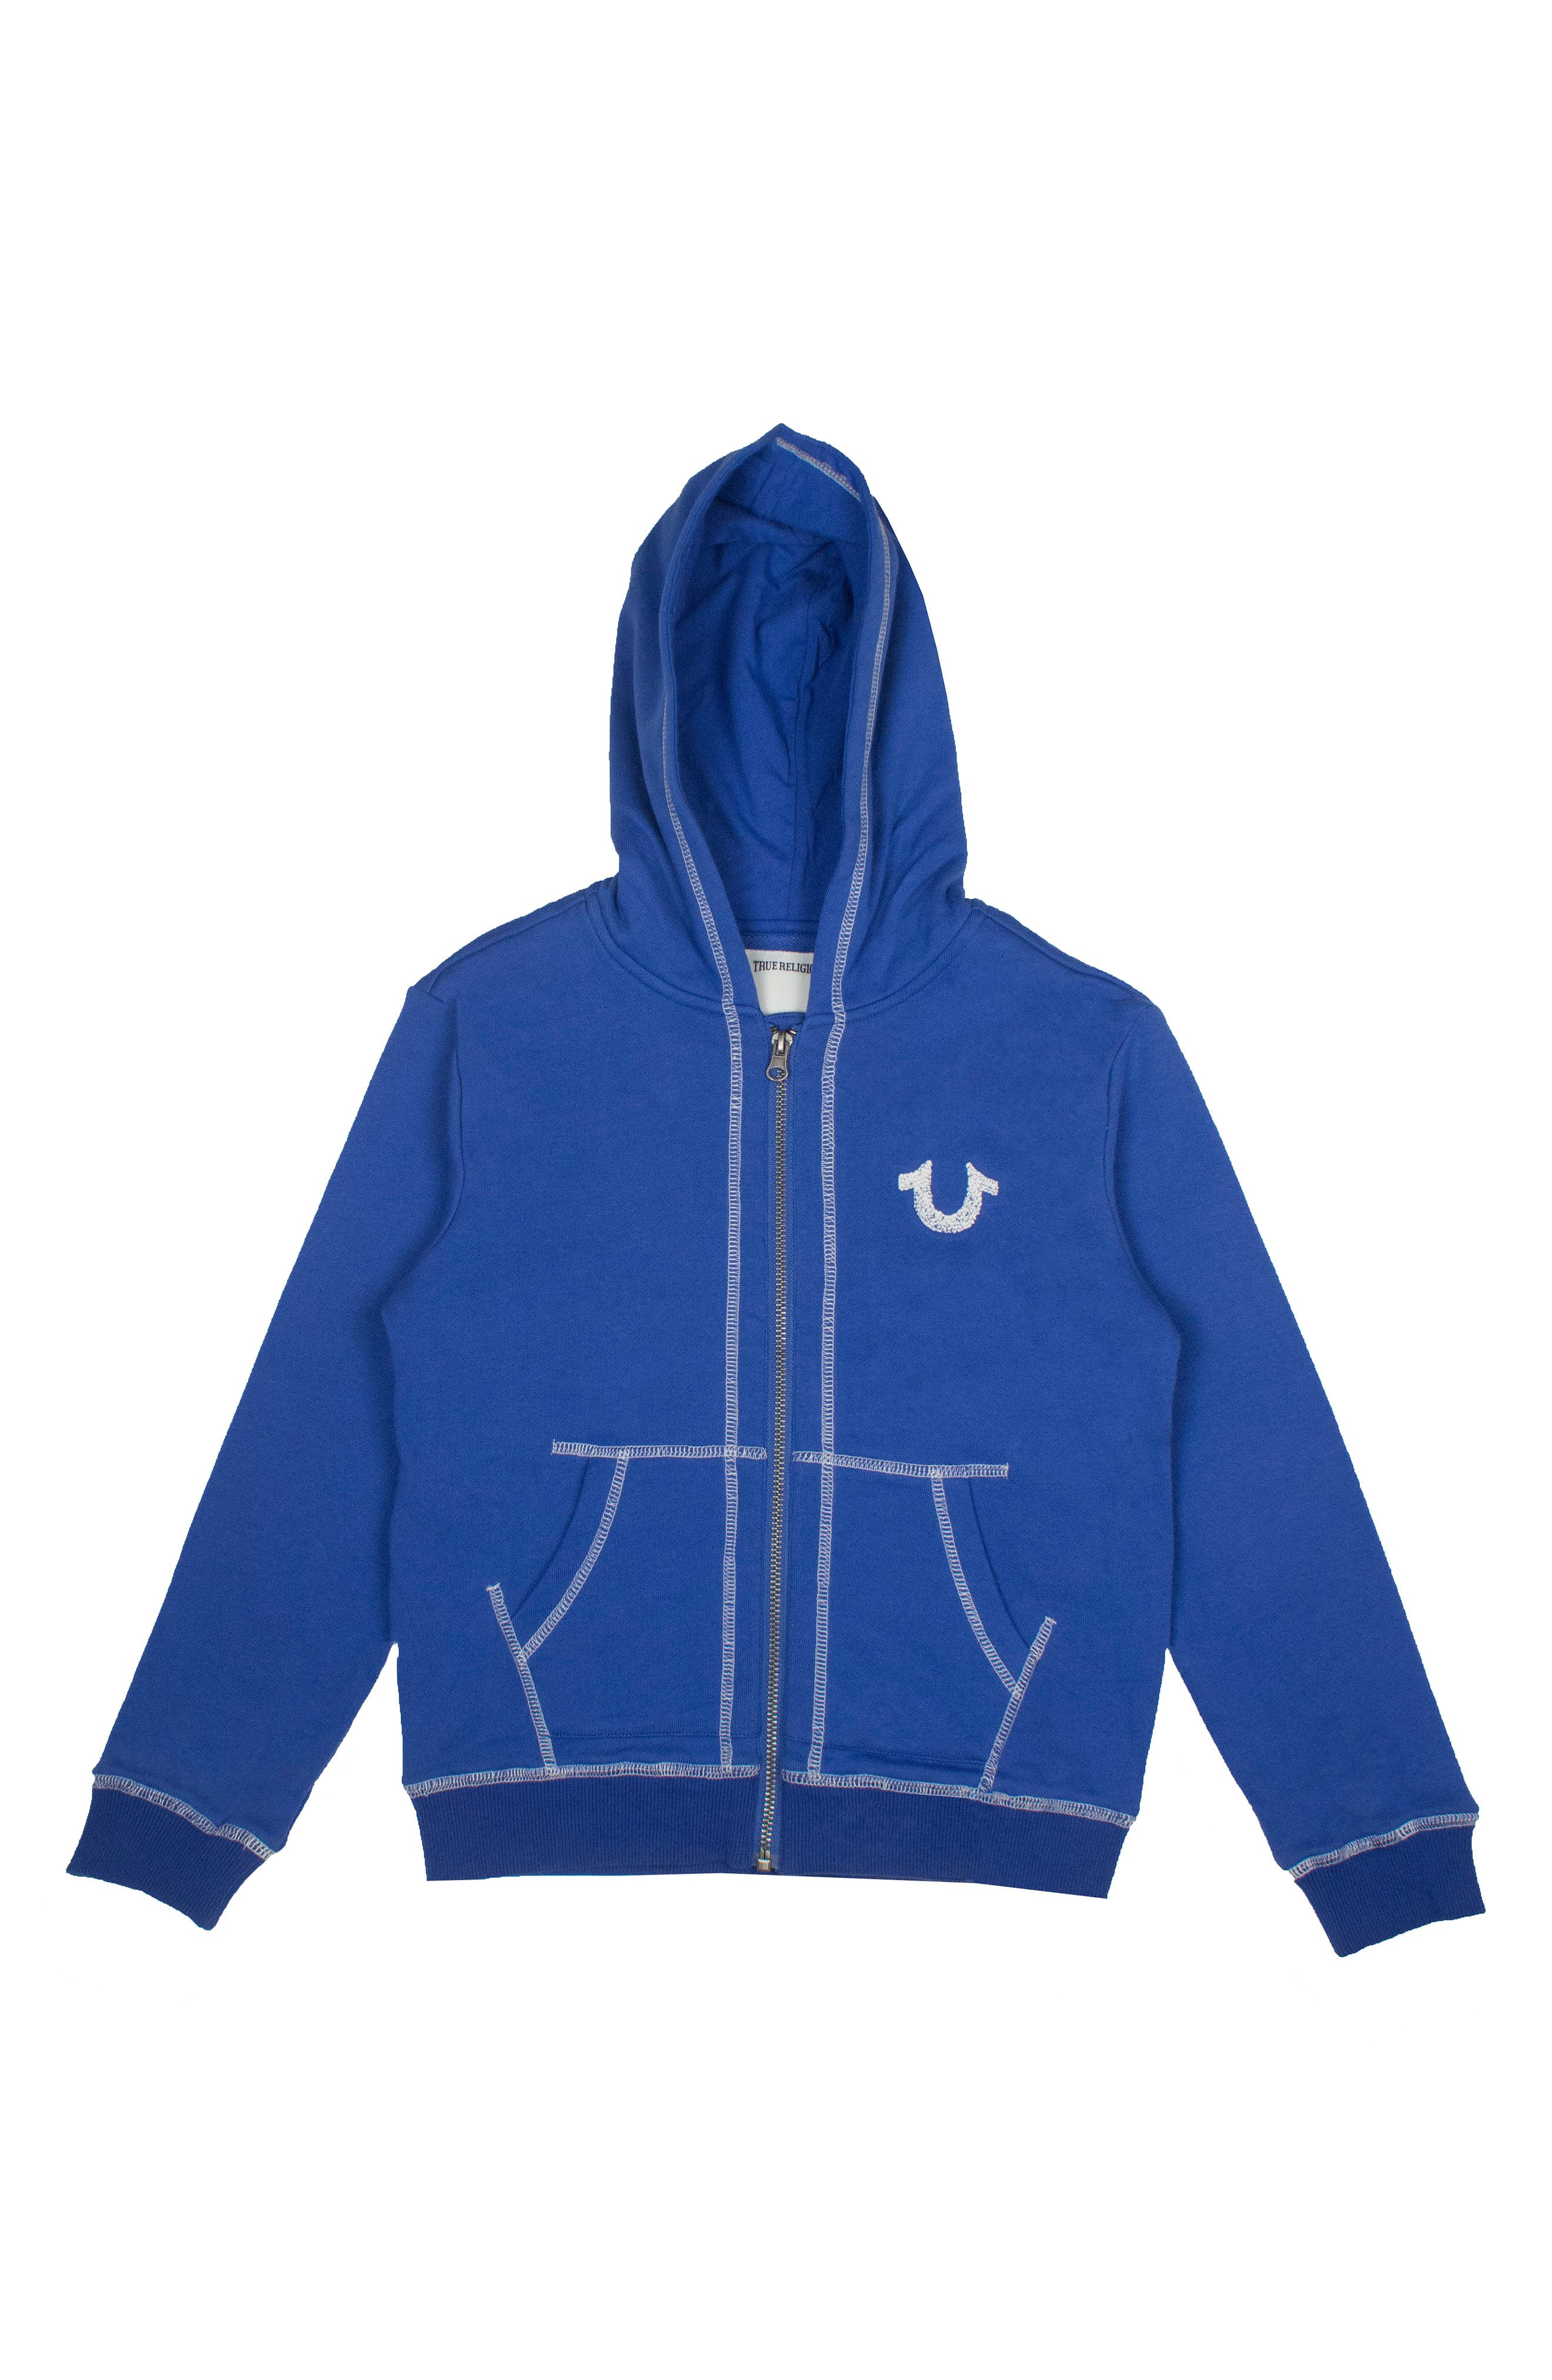 Main Image - True Religion Brand Jeans Shoe String Zip Hoodie (Toddler Boys & Little Boys)